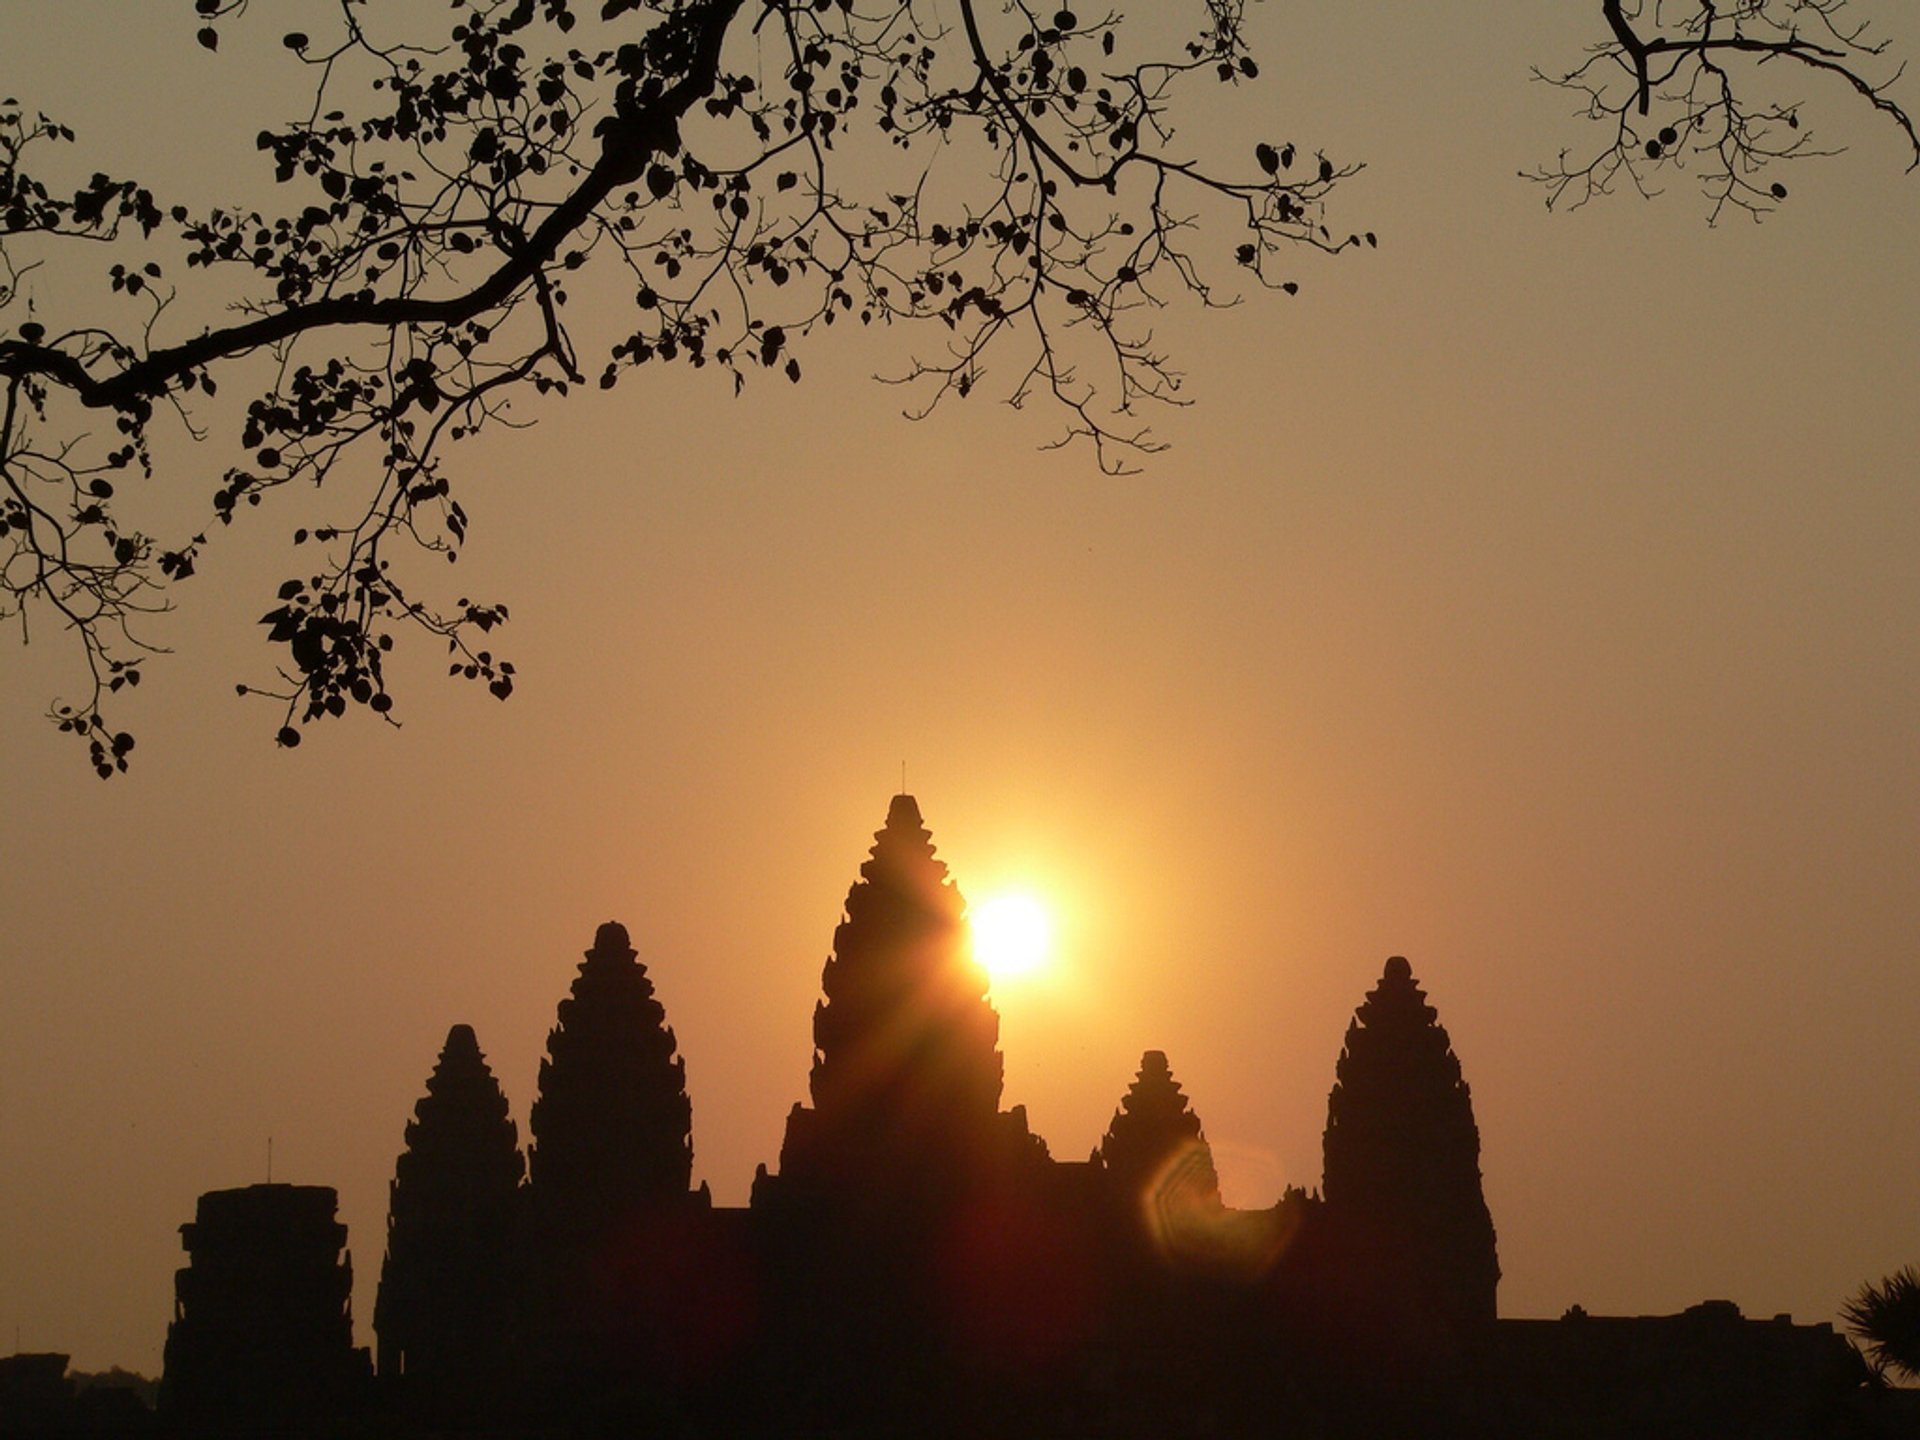 Sunrise and Sunset at Angkor Wat in Cambodia 2020 - Best Time